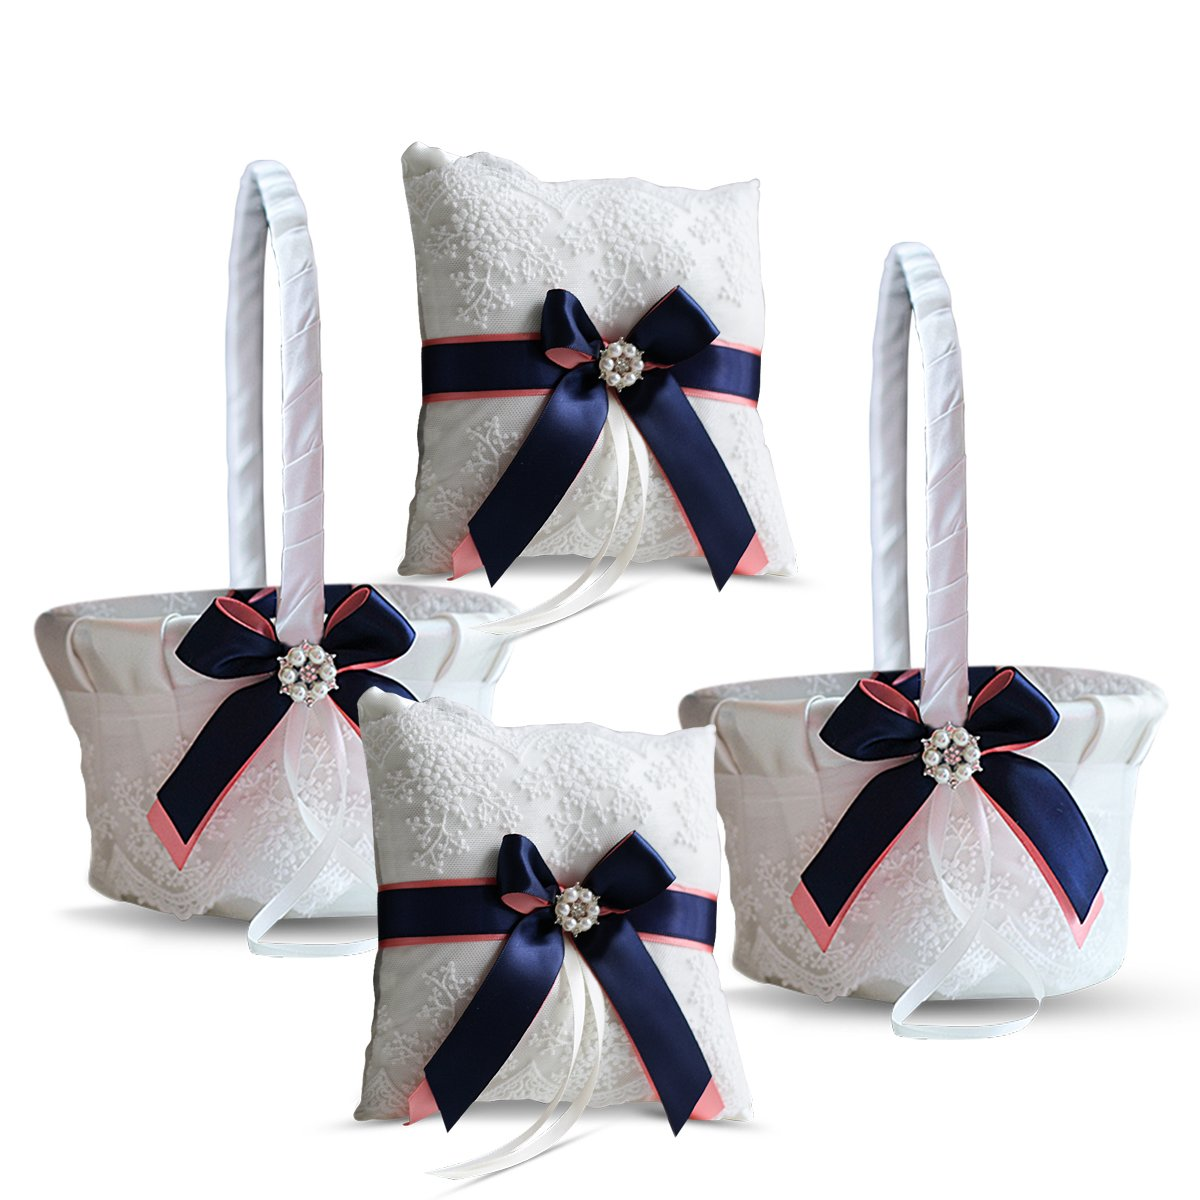 Roman Store Ivory Ring Bearer Pillow and Basket Set | Lace Collection | Flower Girl & Welcome Basket for Guest | Handmade Wedding Baskets & Pillows (Coral Navy Blue) by Roman Store (Image #1)